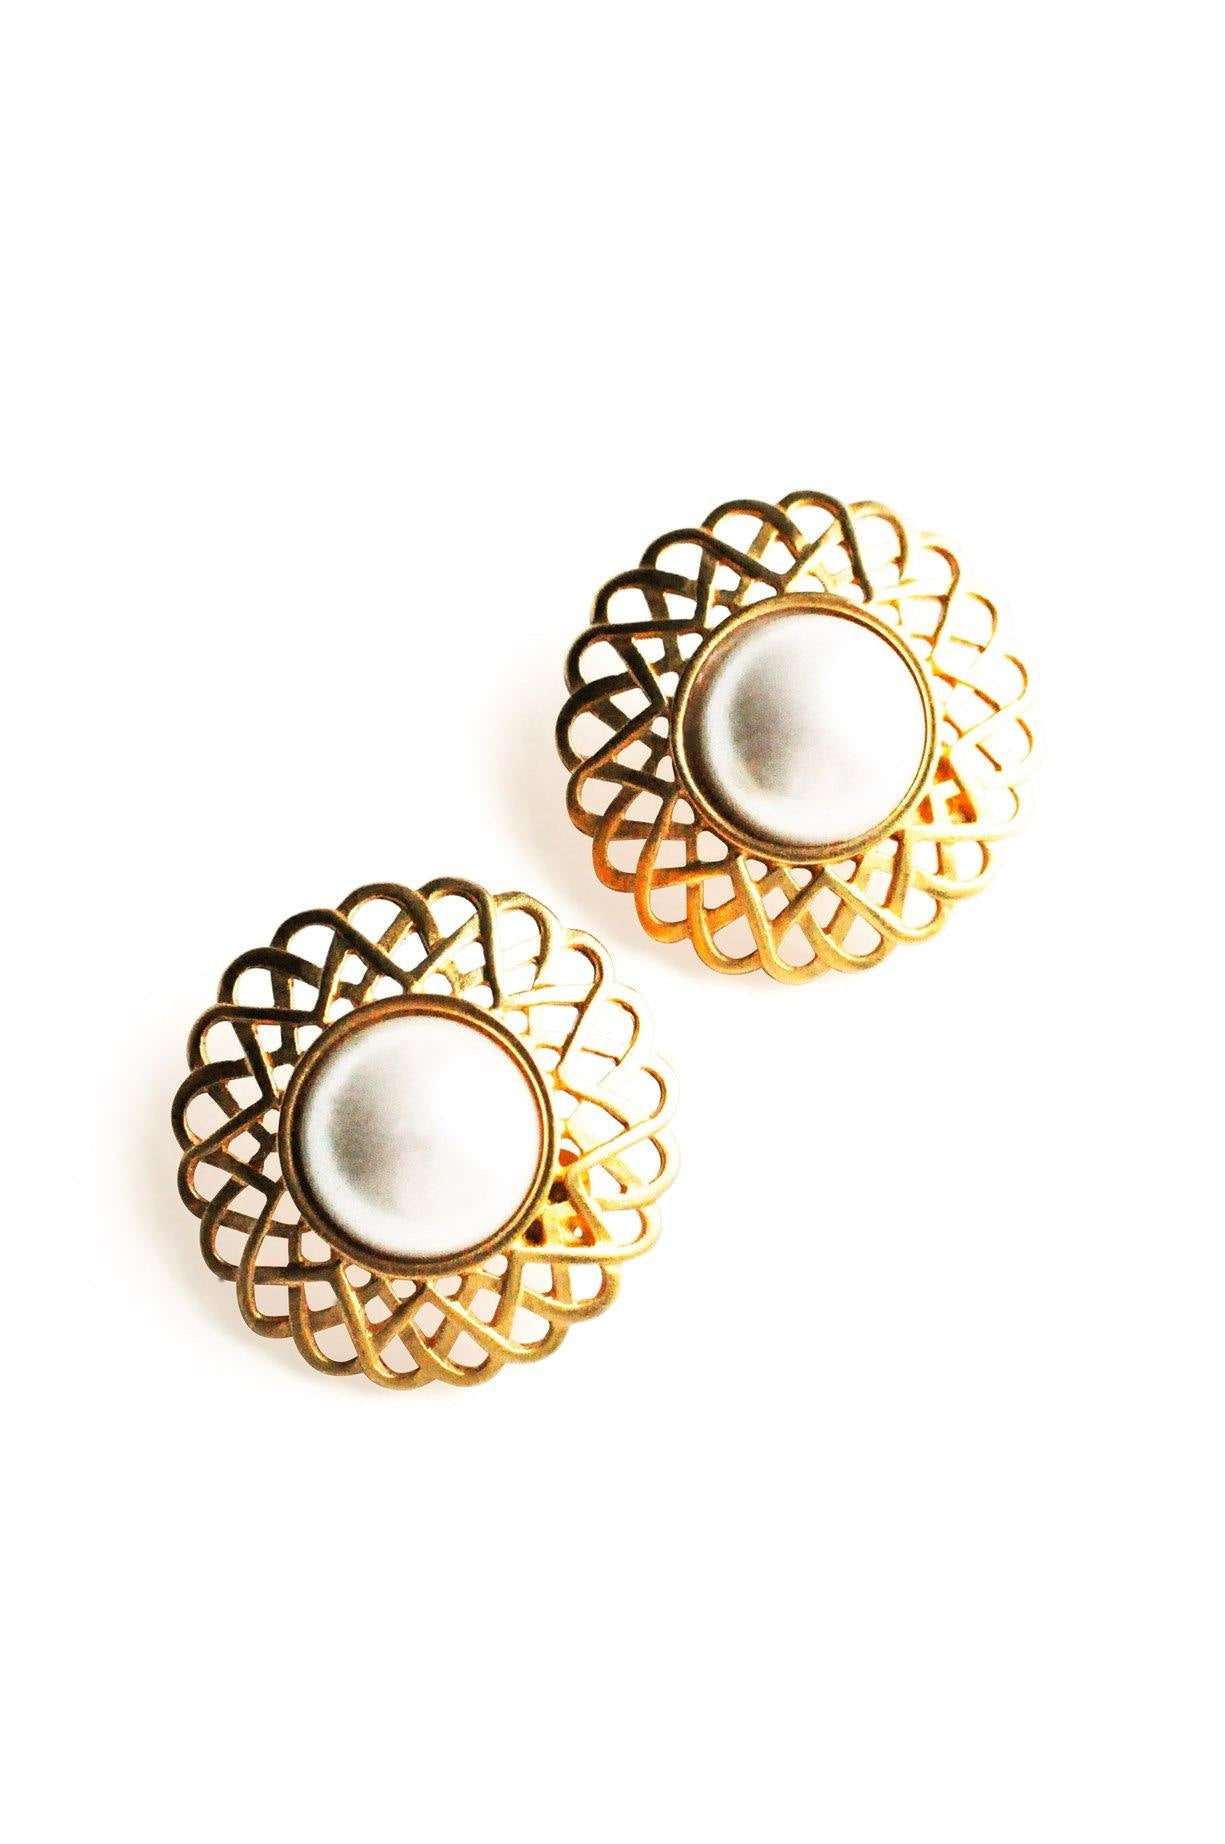 Pearl Statement Clip-on Earrings from Sweet & Spark